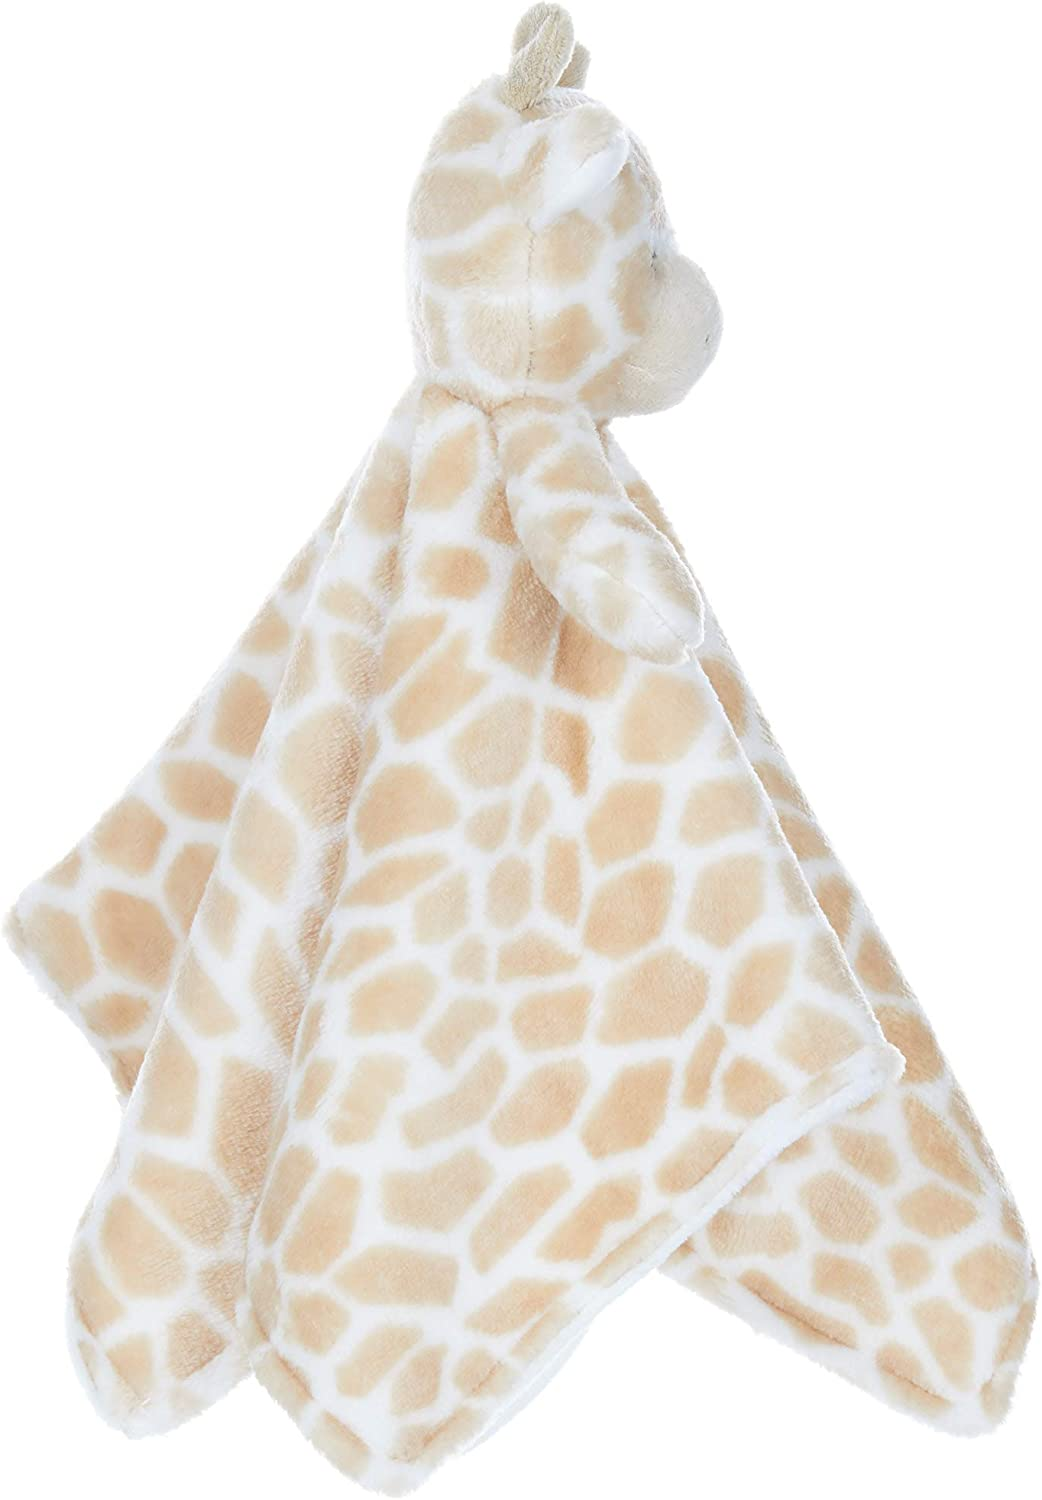 Carters Giraffe Plush Stuffed Animal Snuggler Blanket